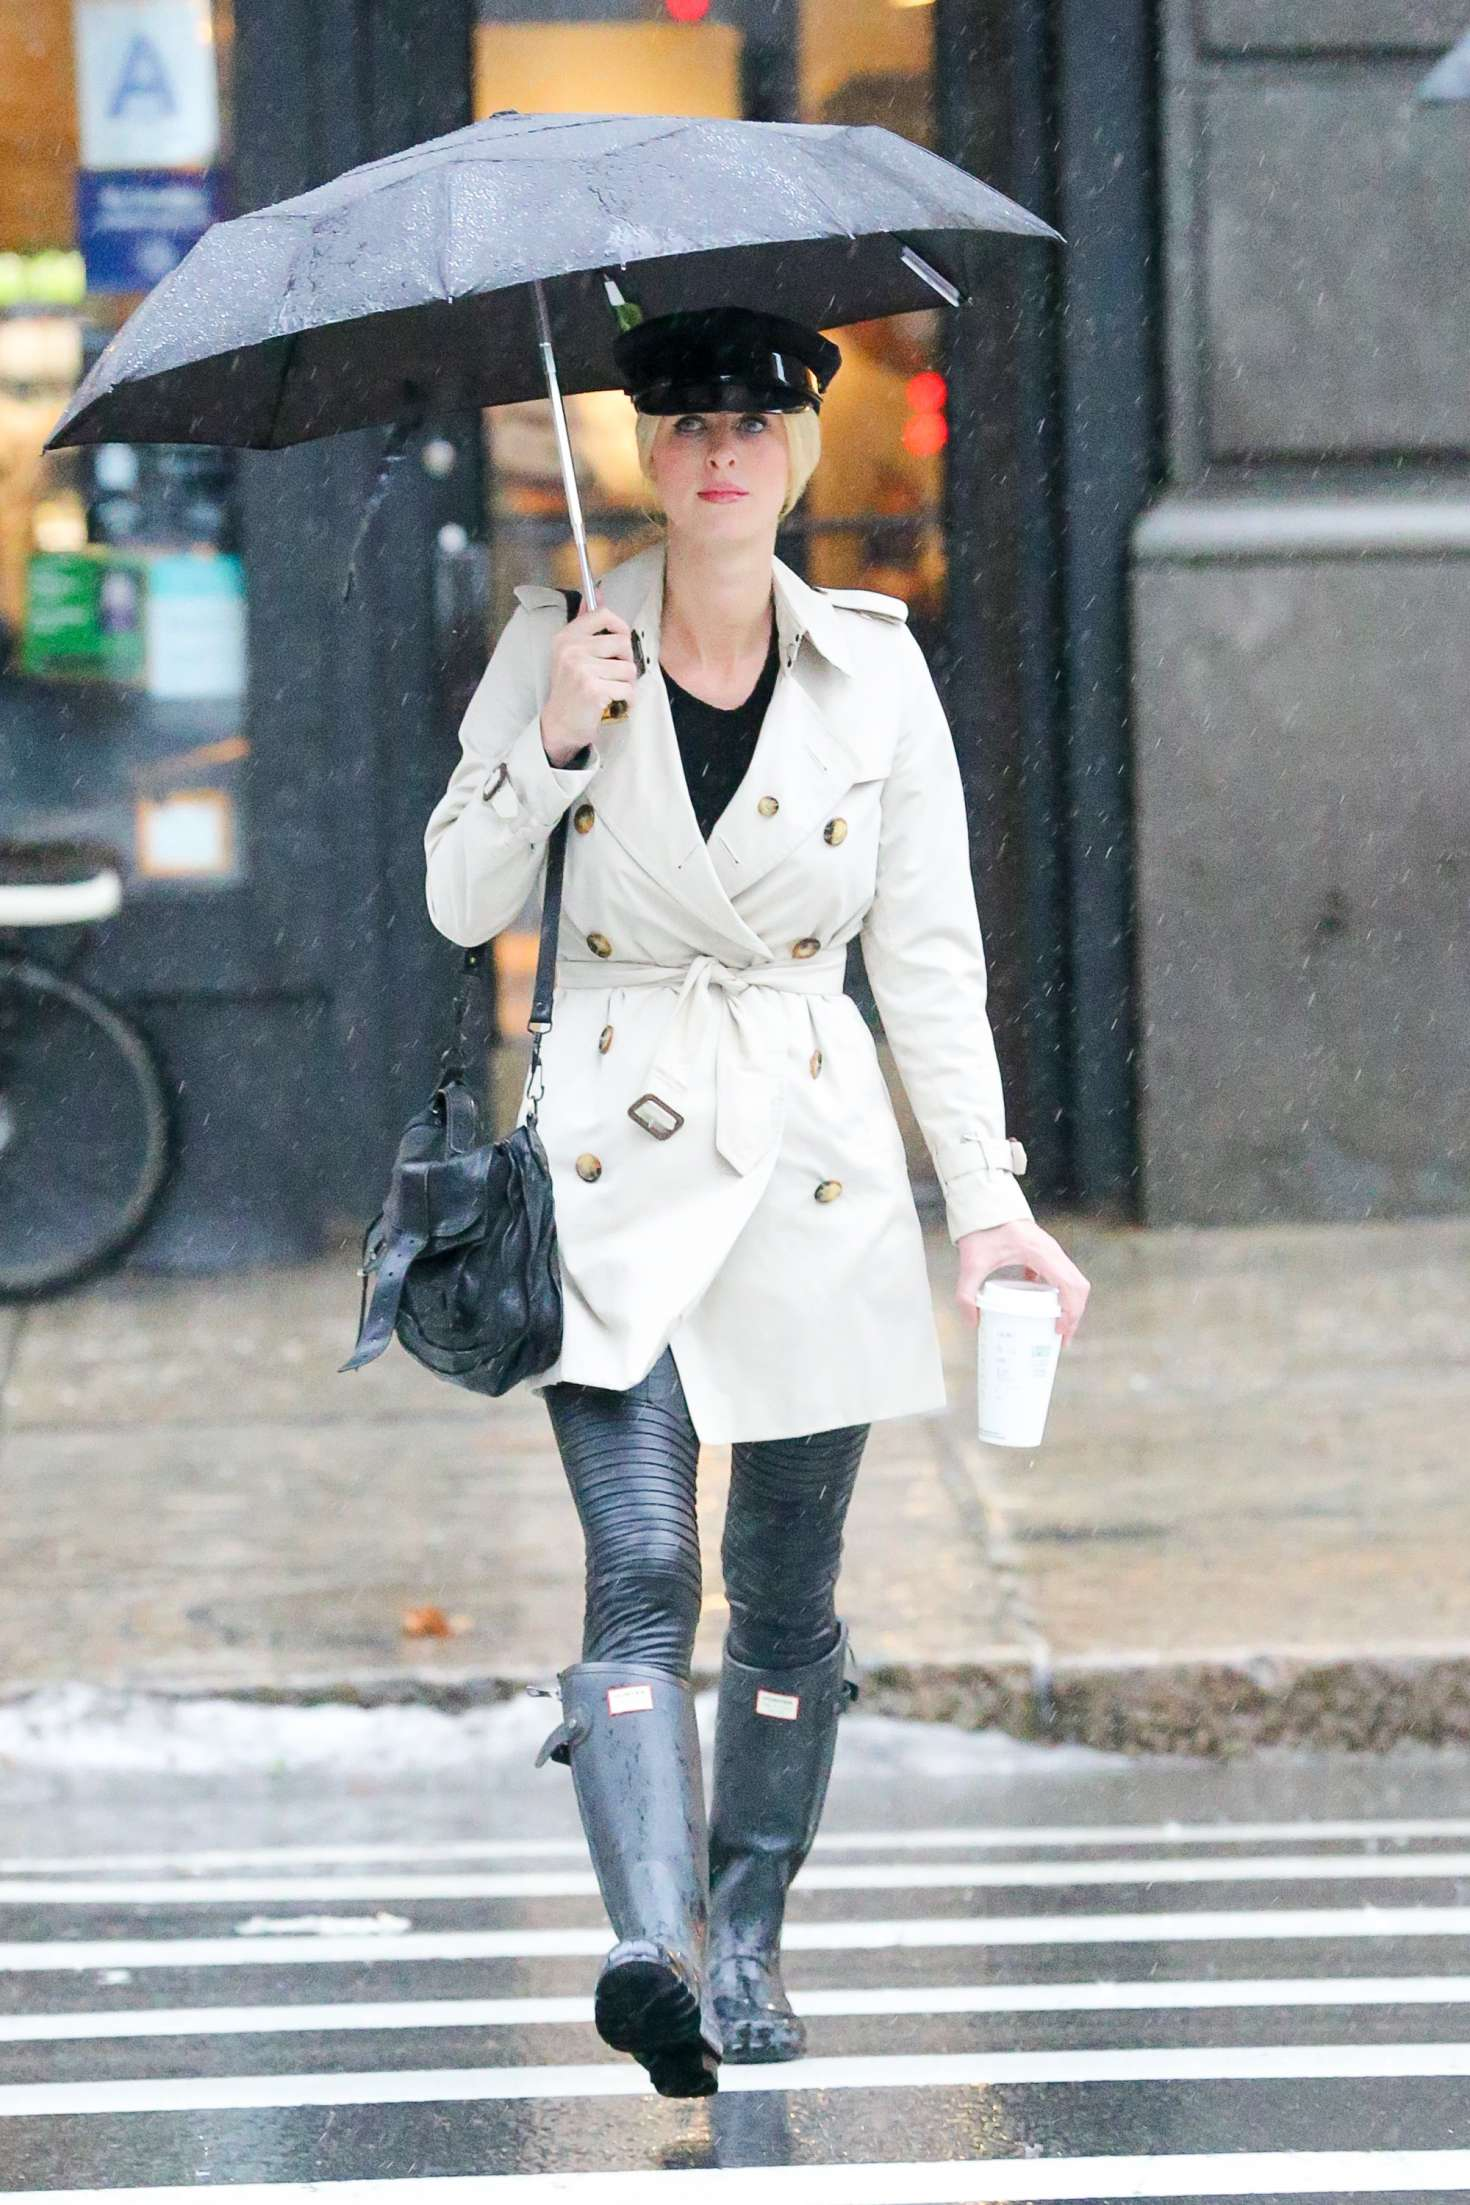 Nicky Hilton out and about in a rainy day in NYC